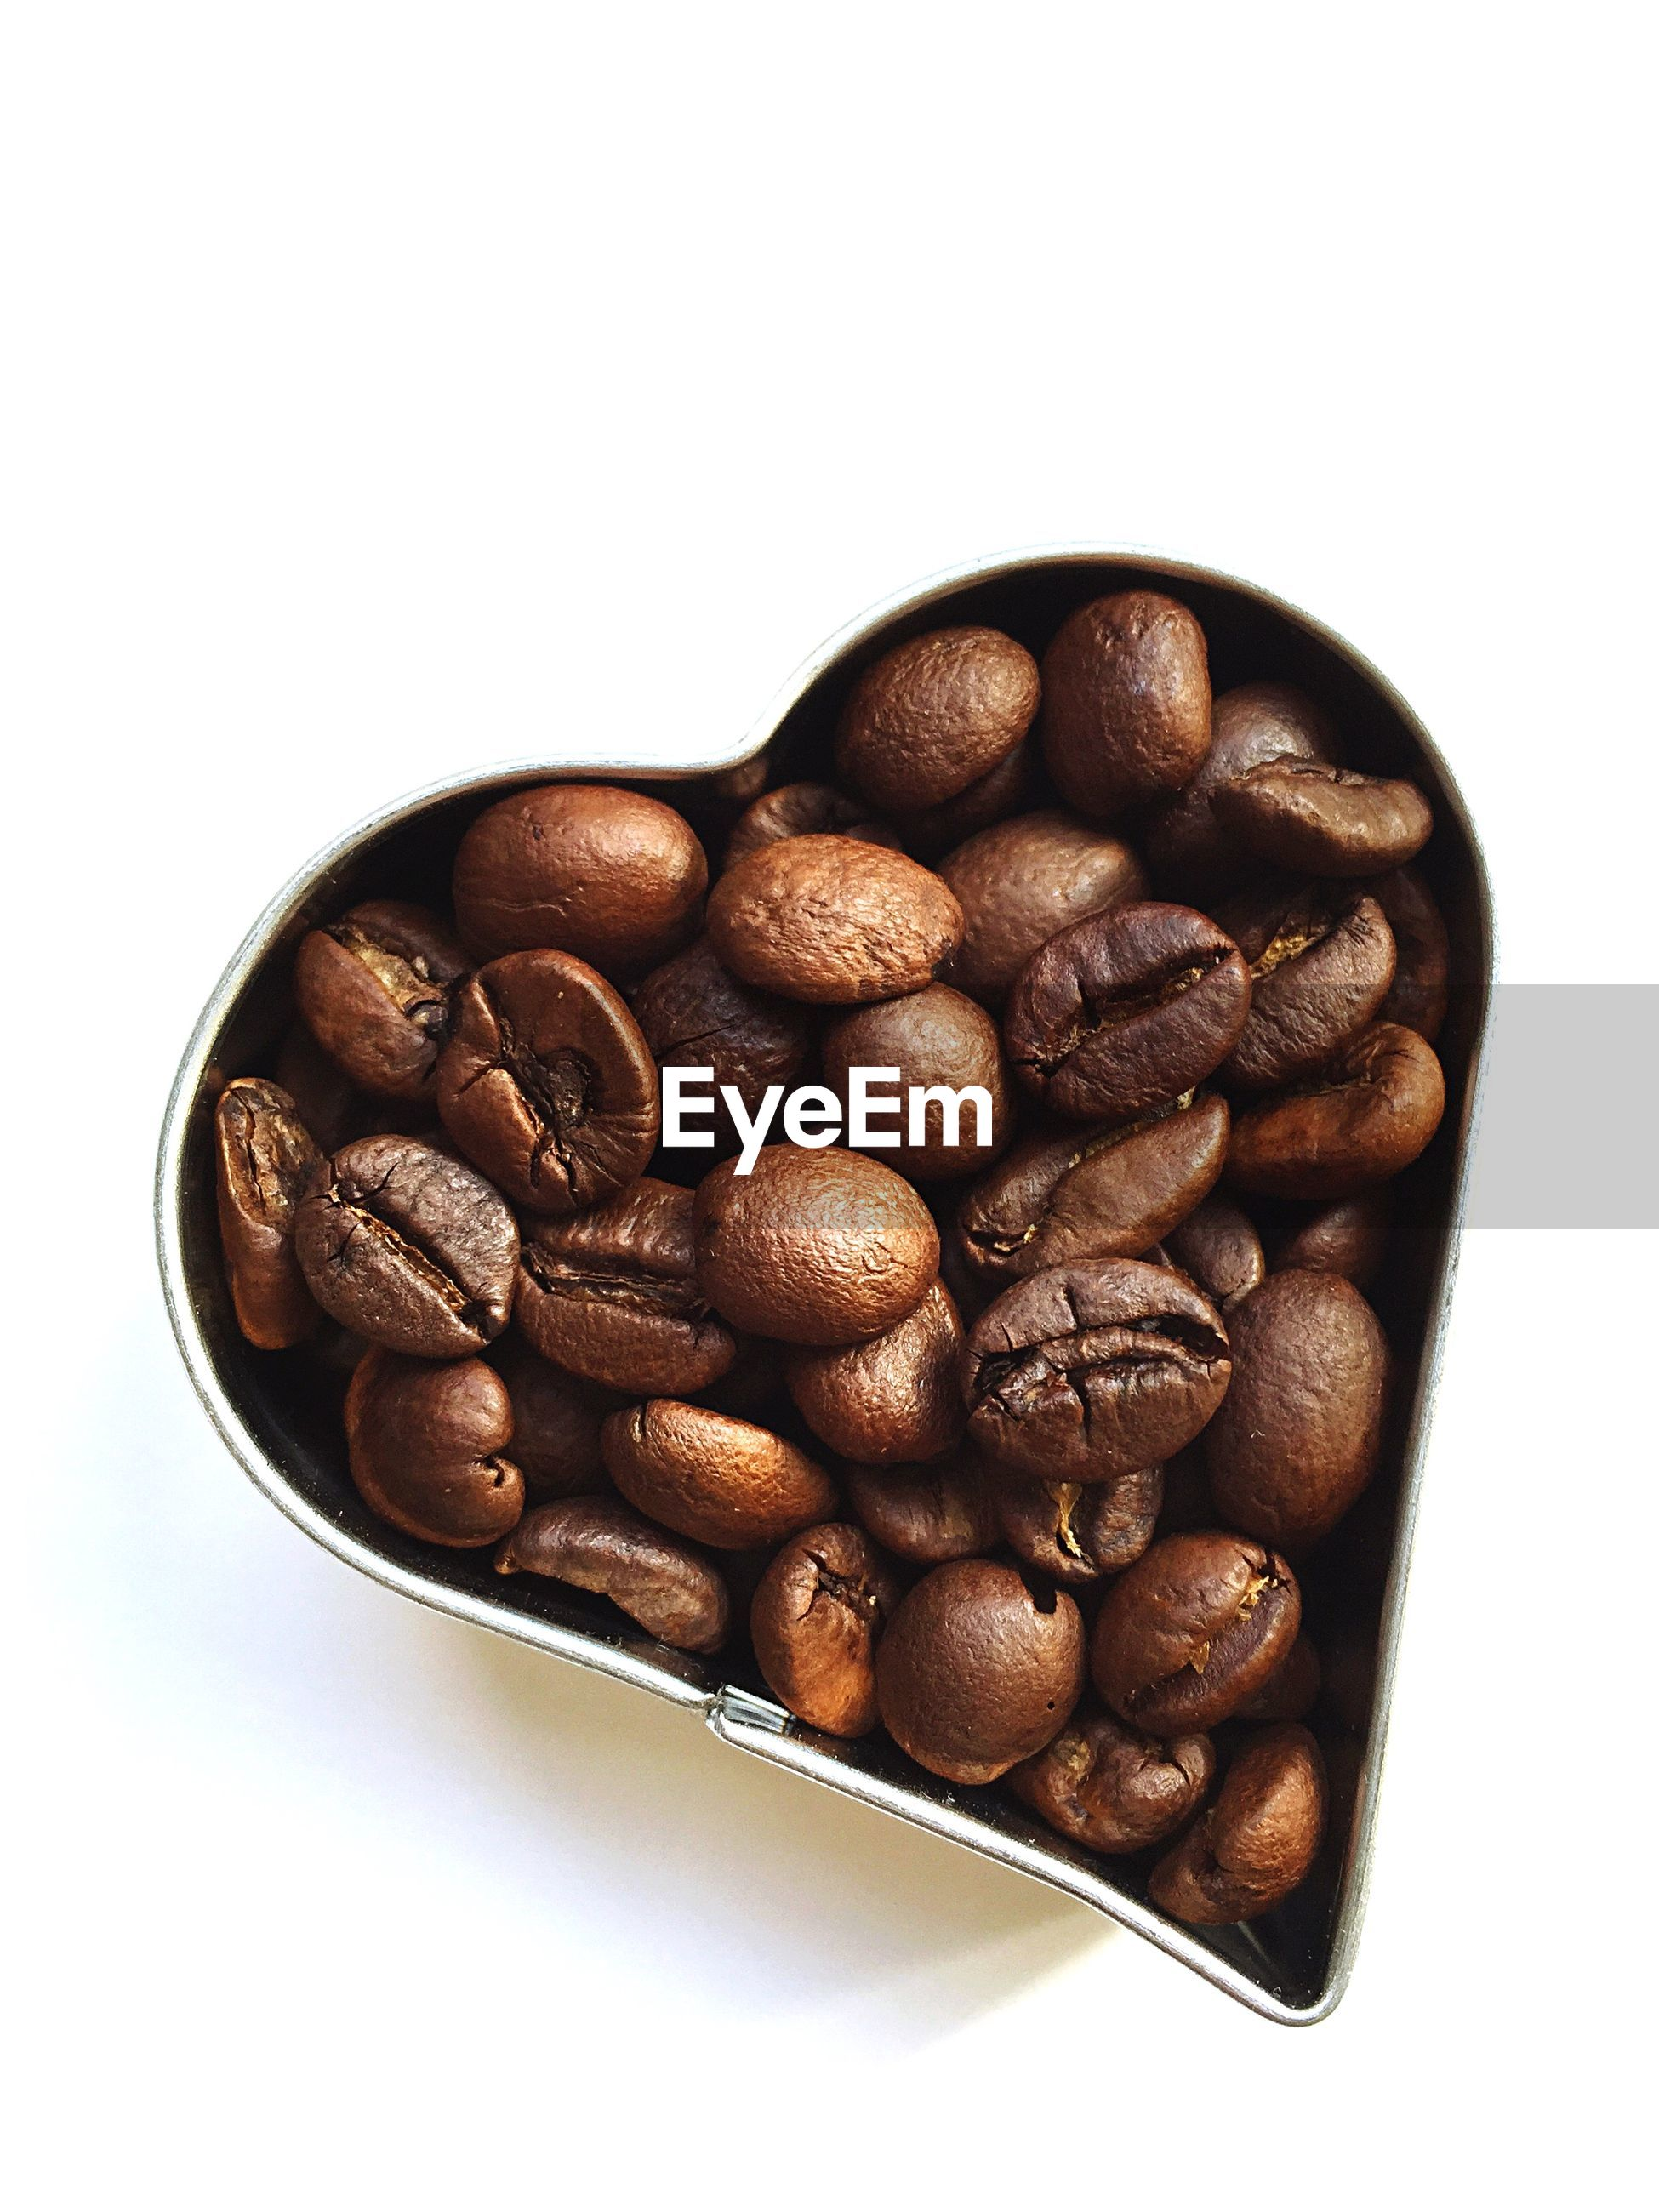 Close-up of coffee beans in heart shape container on white background